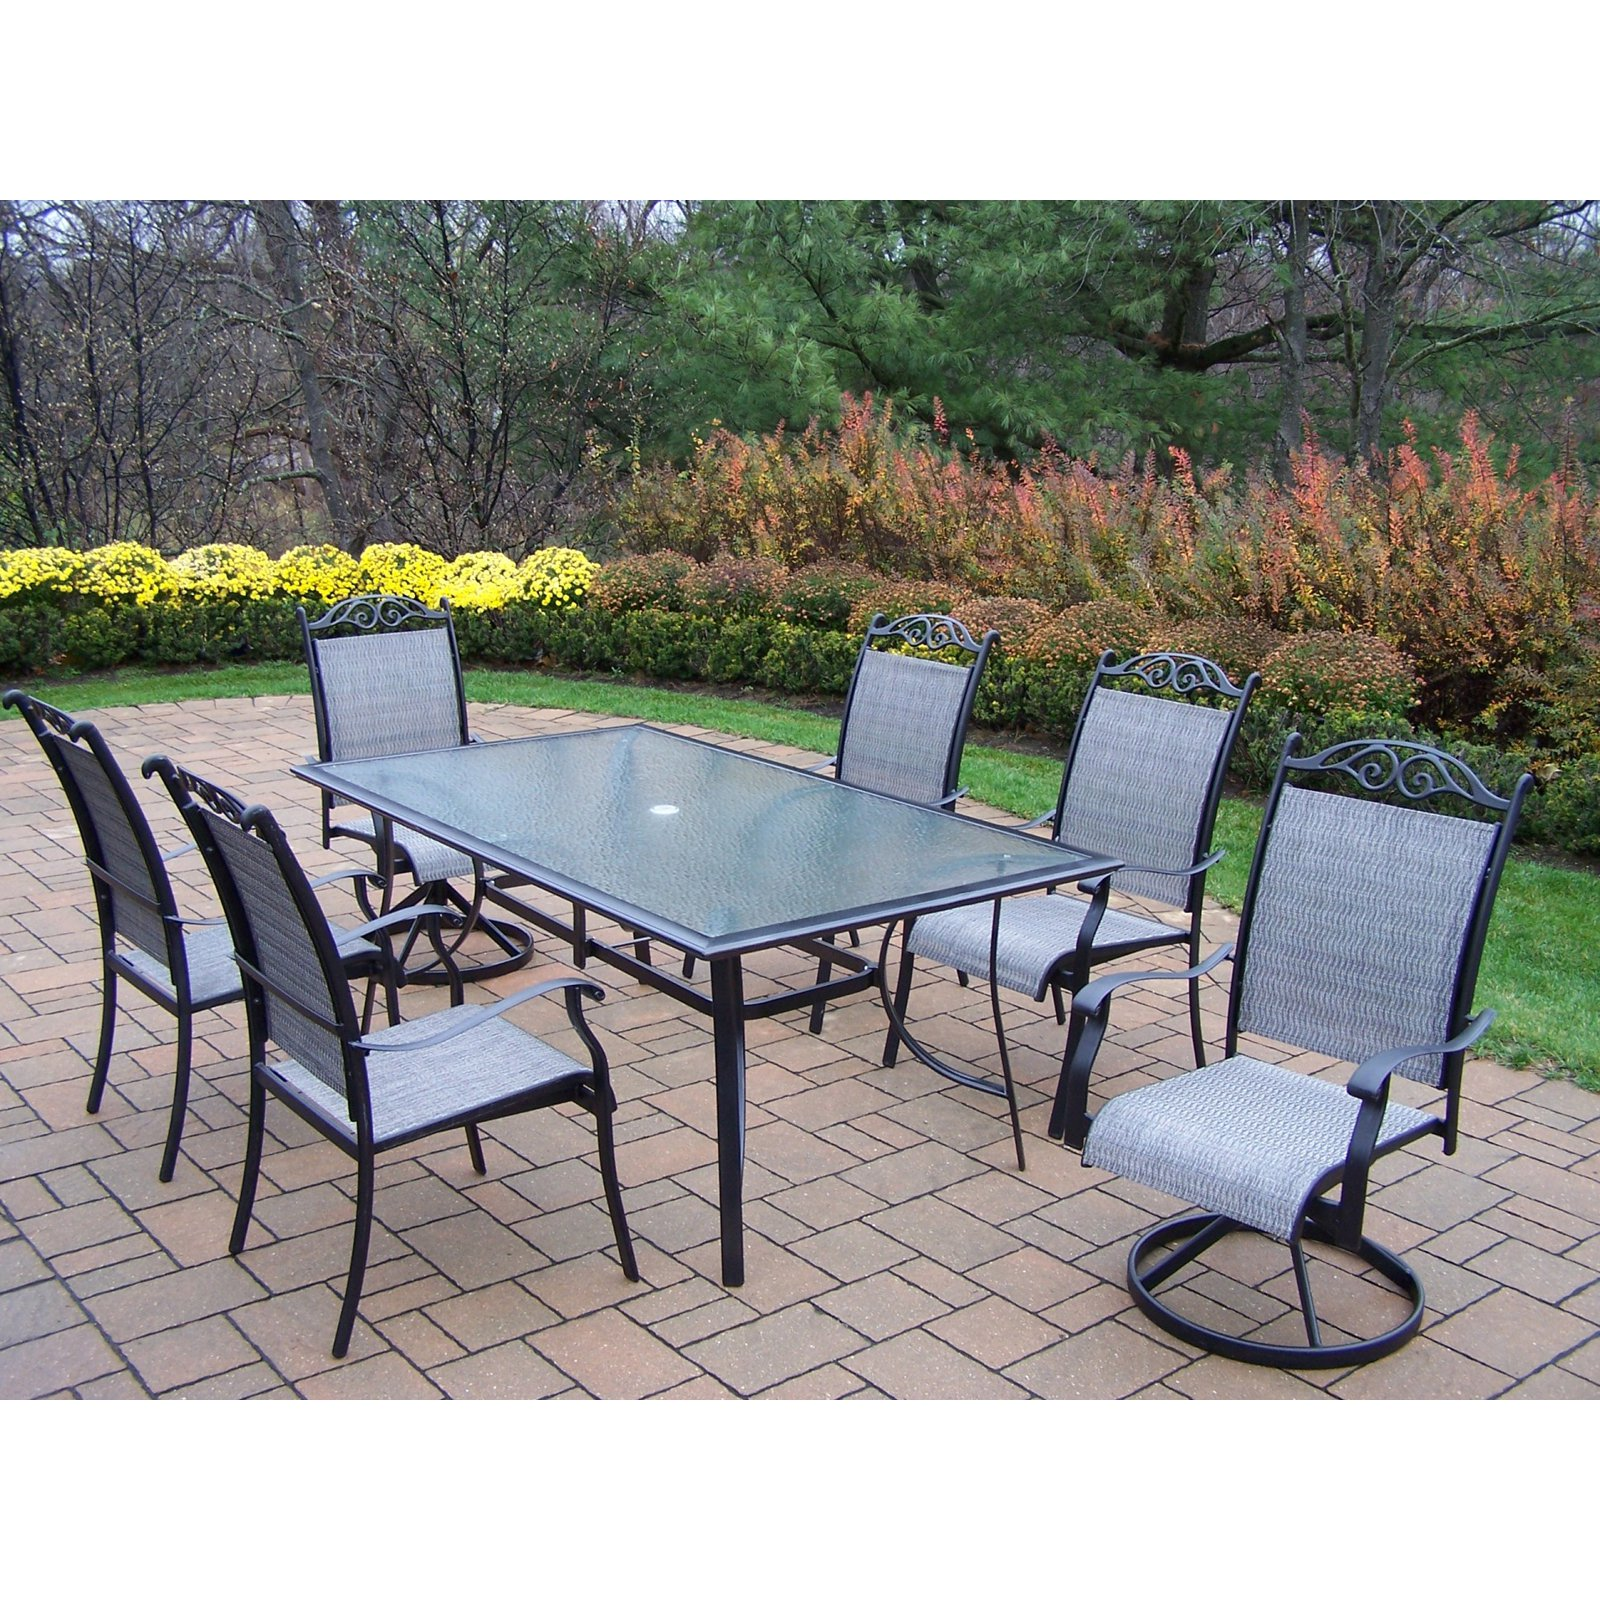 Oakland Living Cascade 7 Piece Sling Patio Dining Set